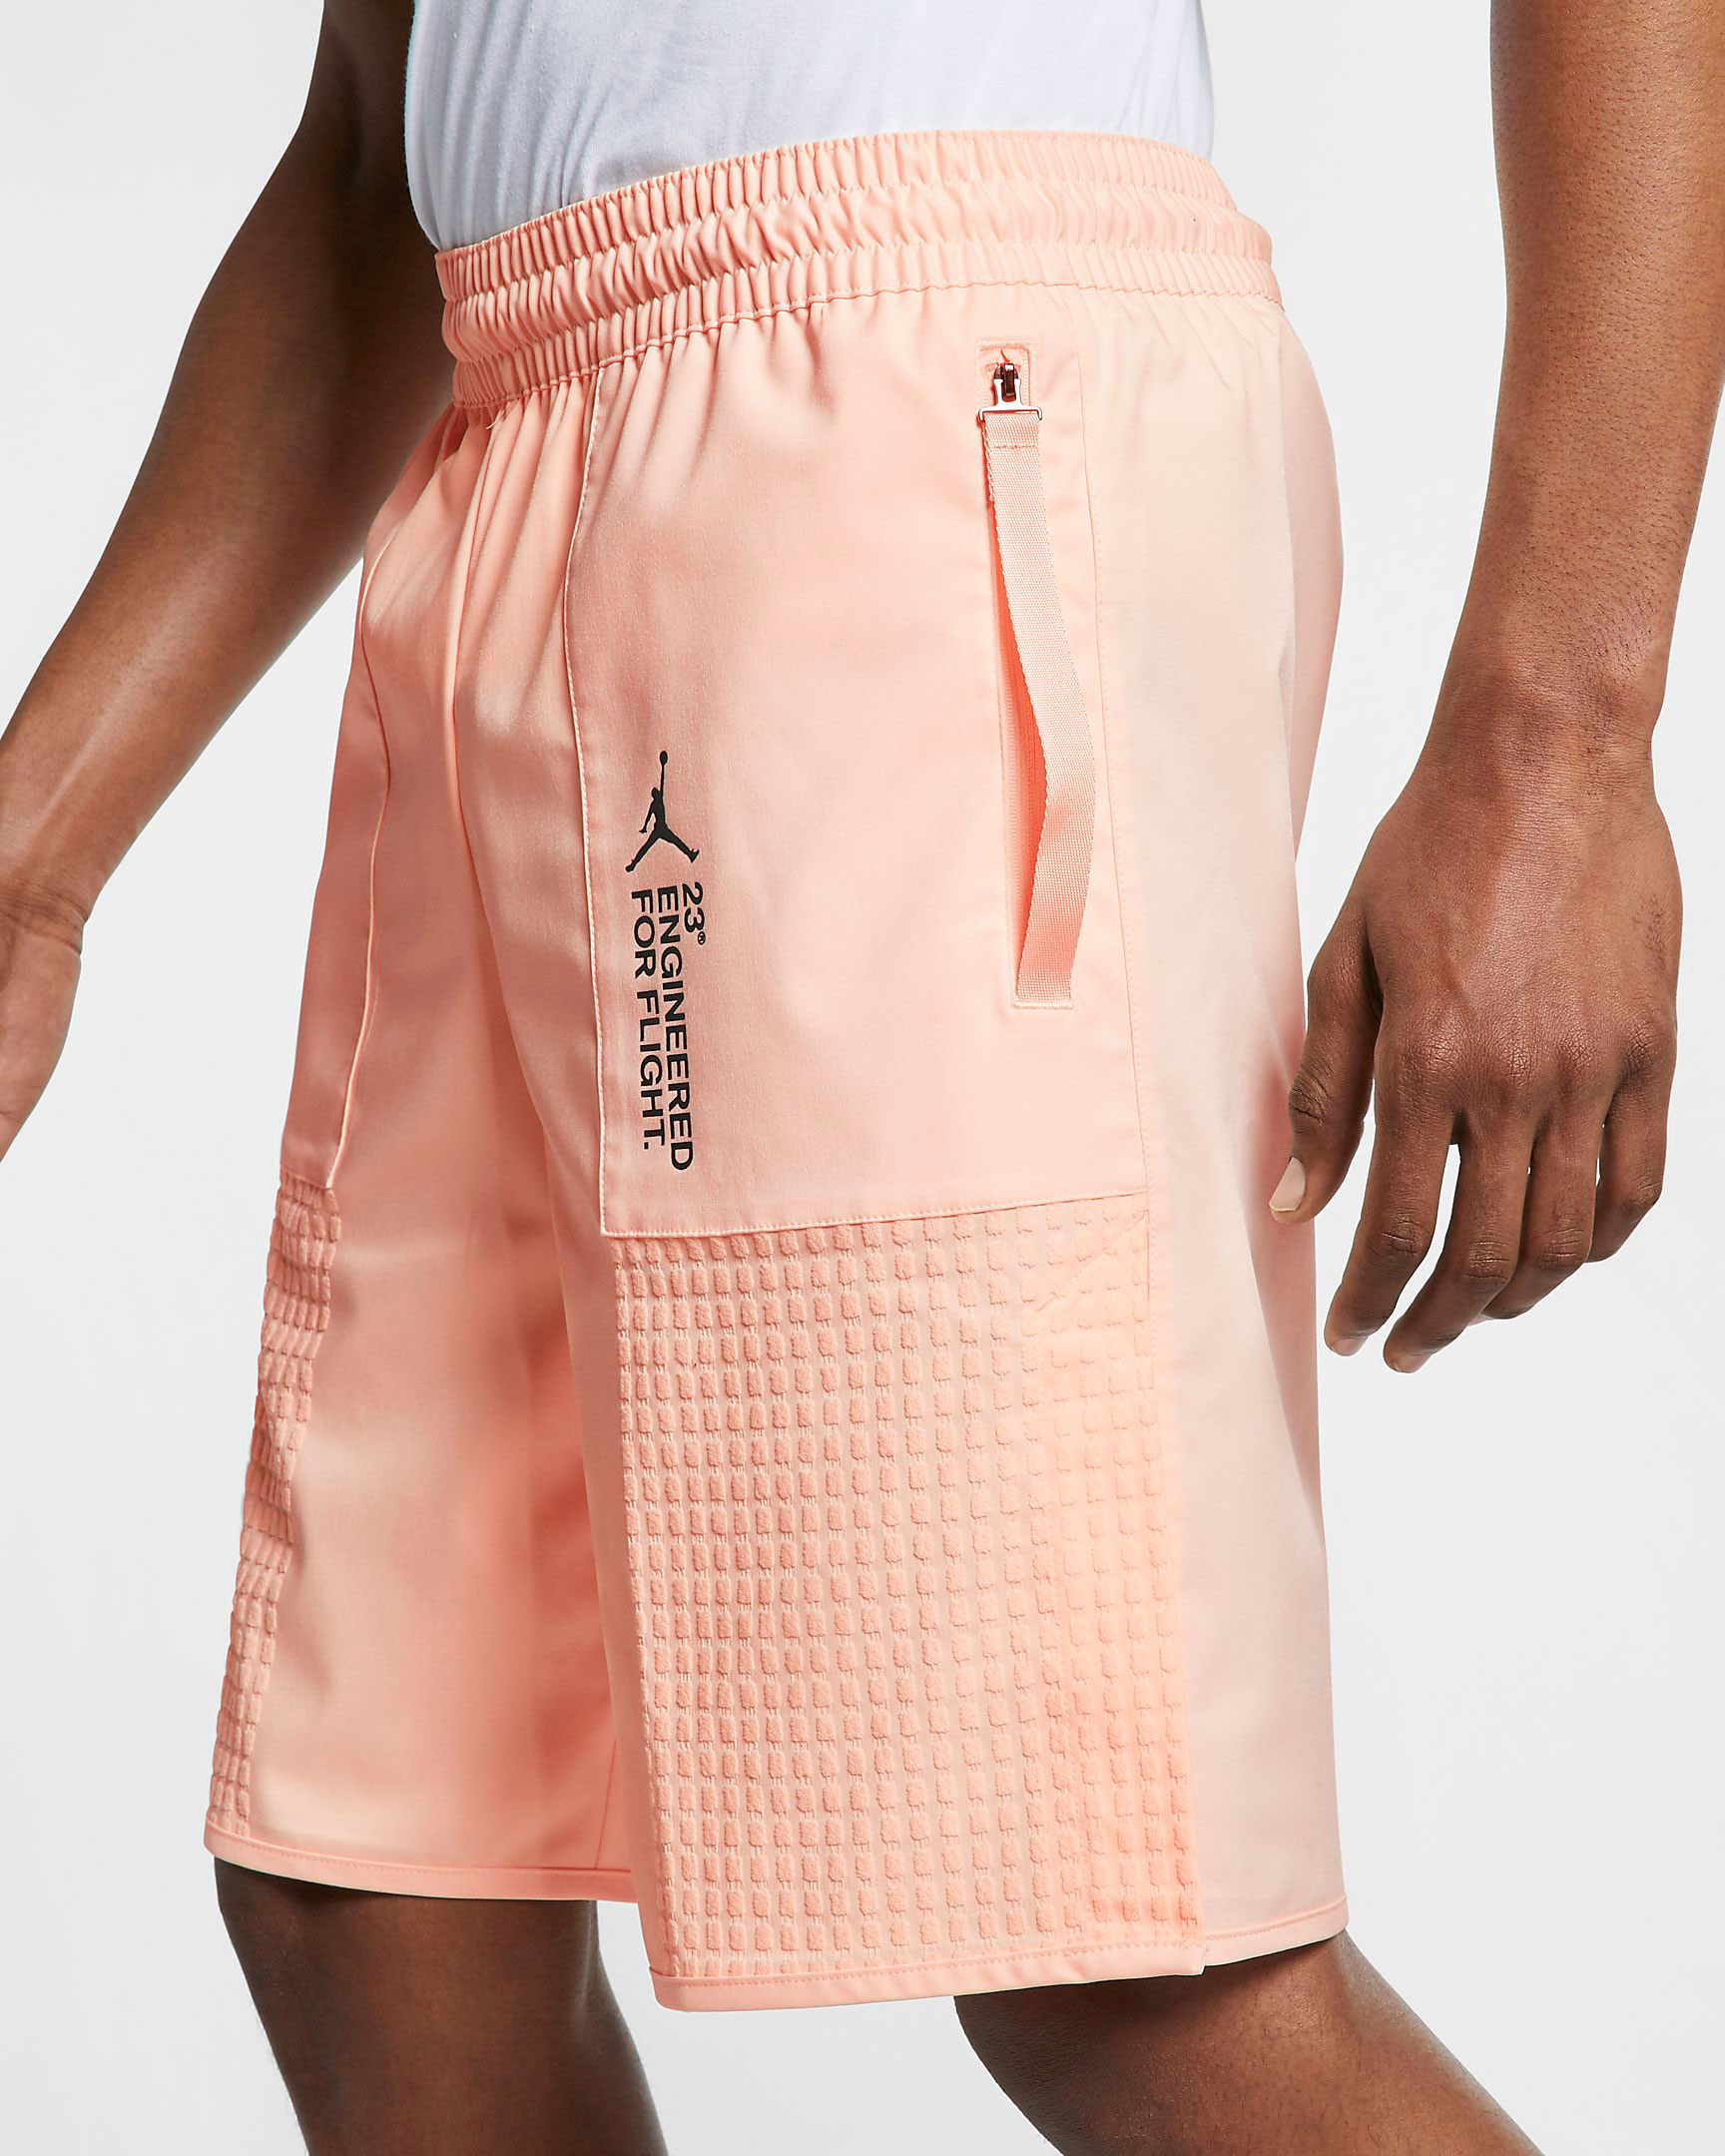 air-jordan-1-crimson-tint-shorts-3